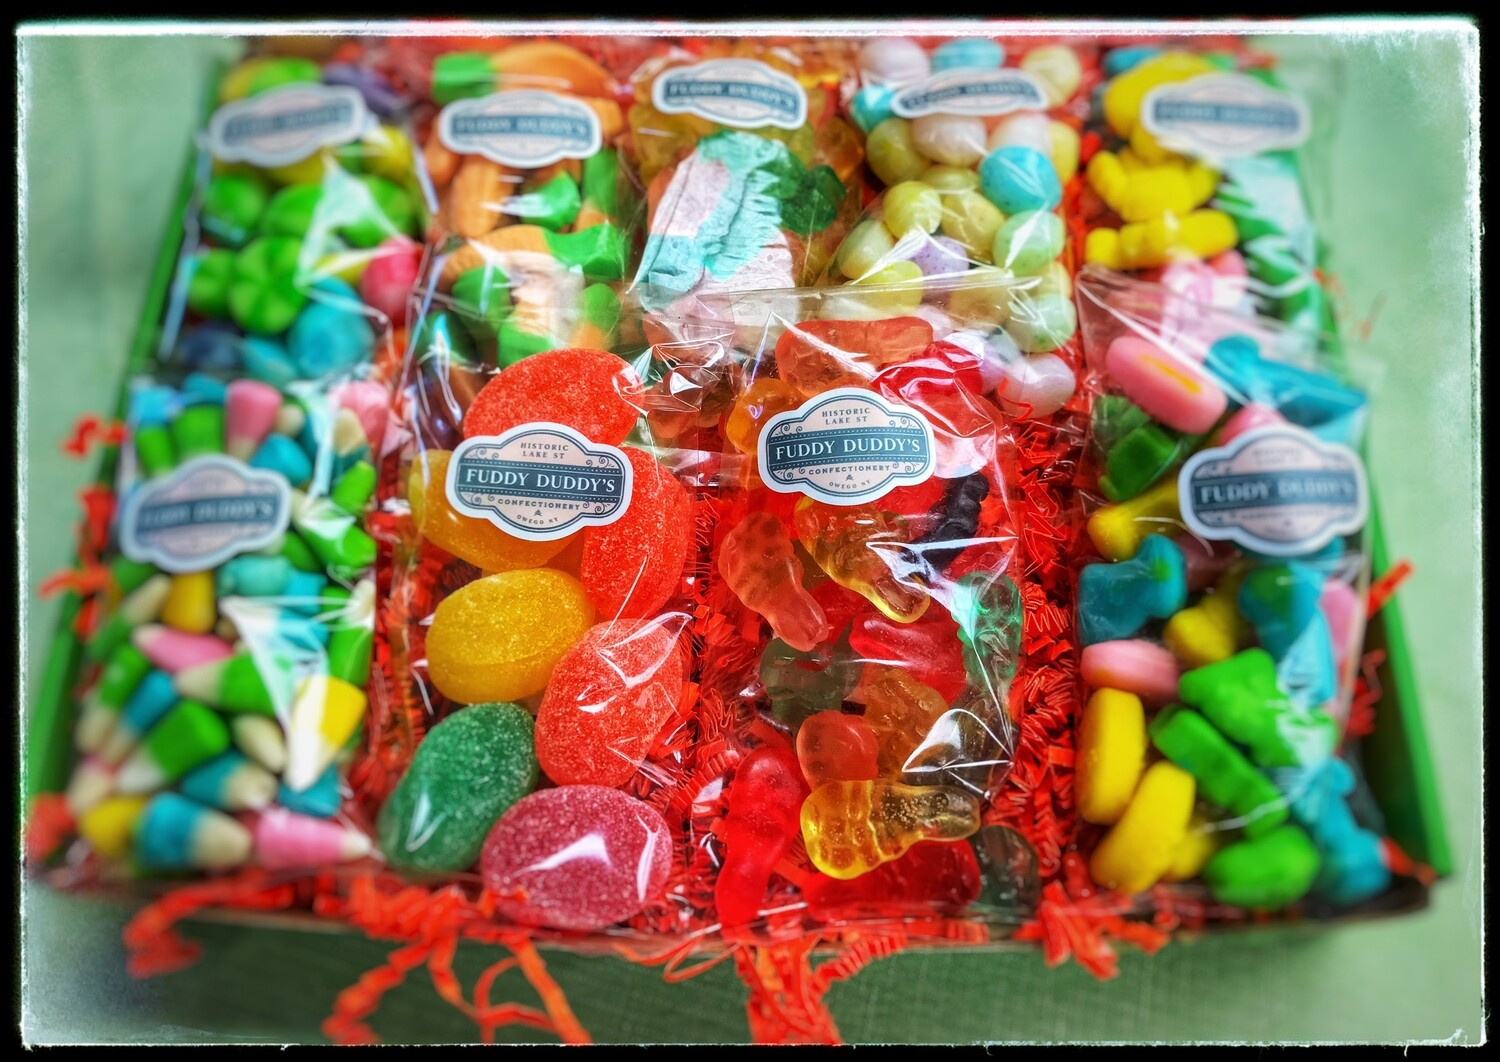 Fuddy Duddy's Happy Easter Gift Set - Gummy Lovers